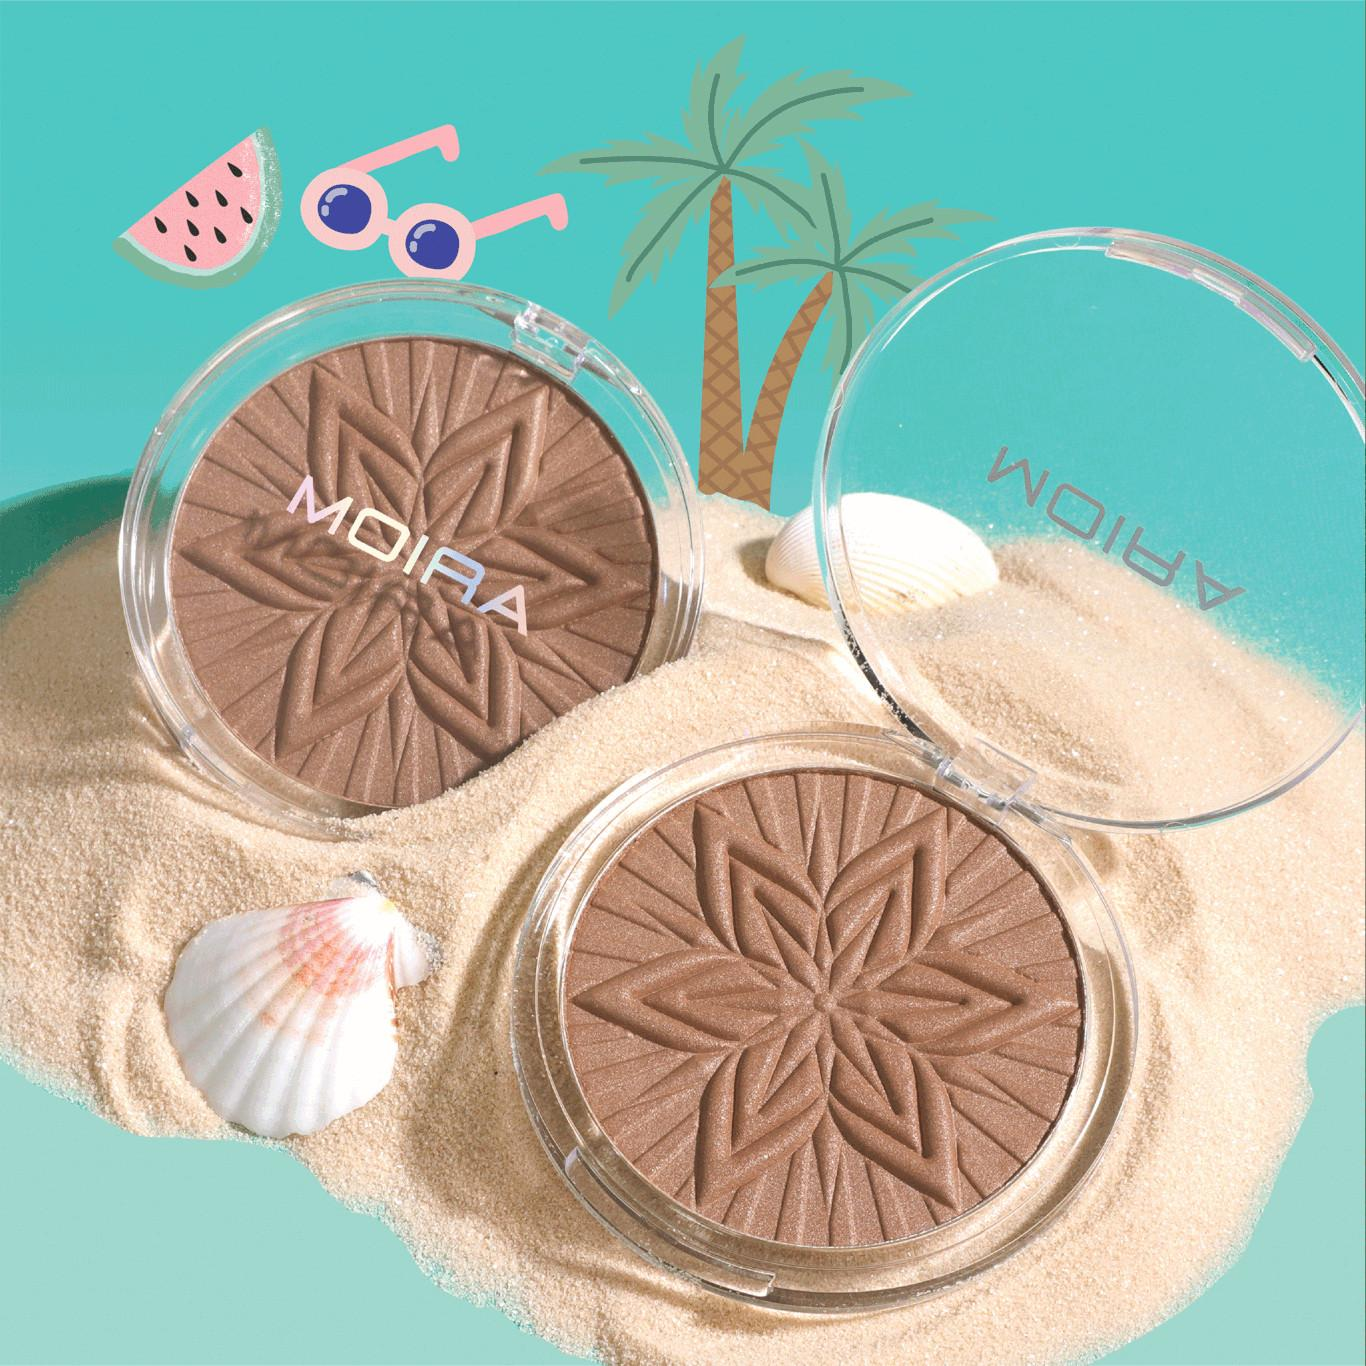 Moira Cosmetics Sun Glow Face & Body Bronzer In 001 Sunkissed